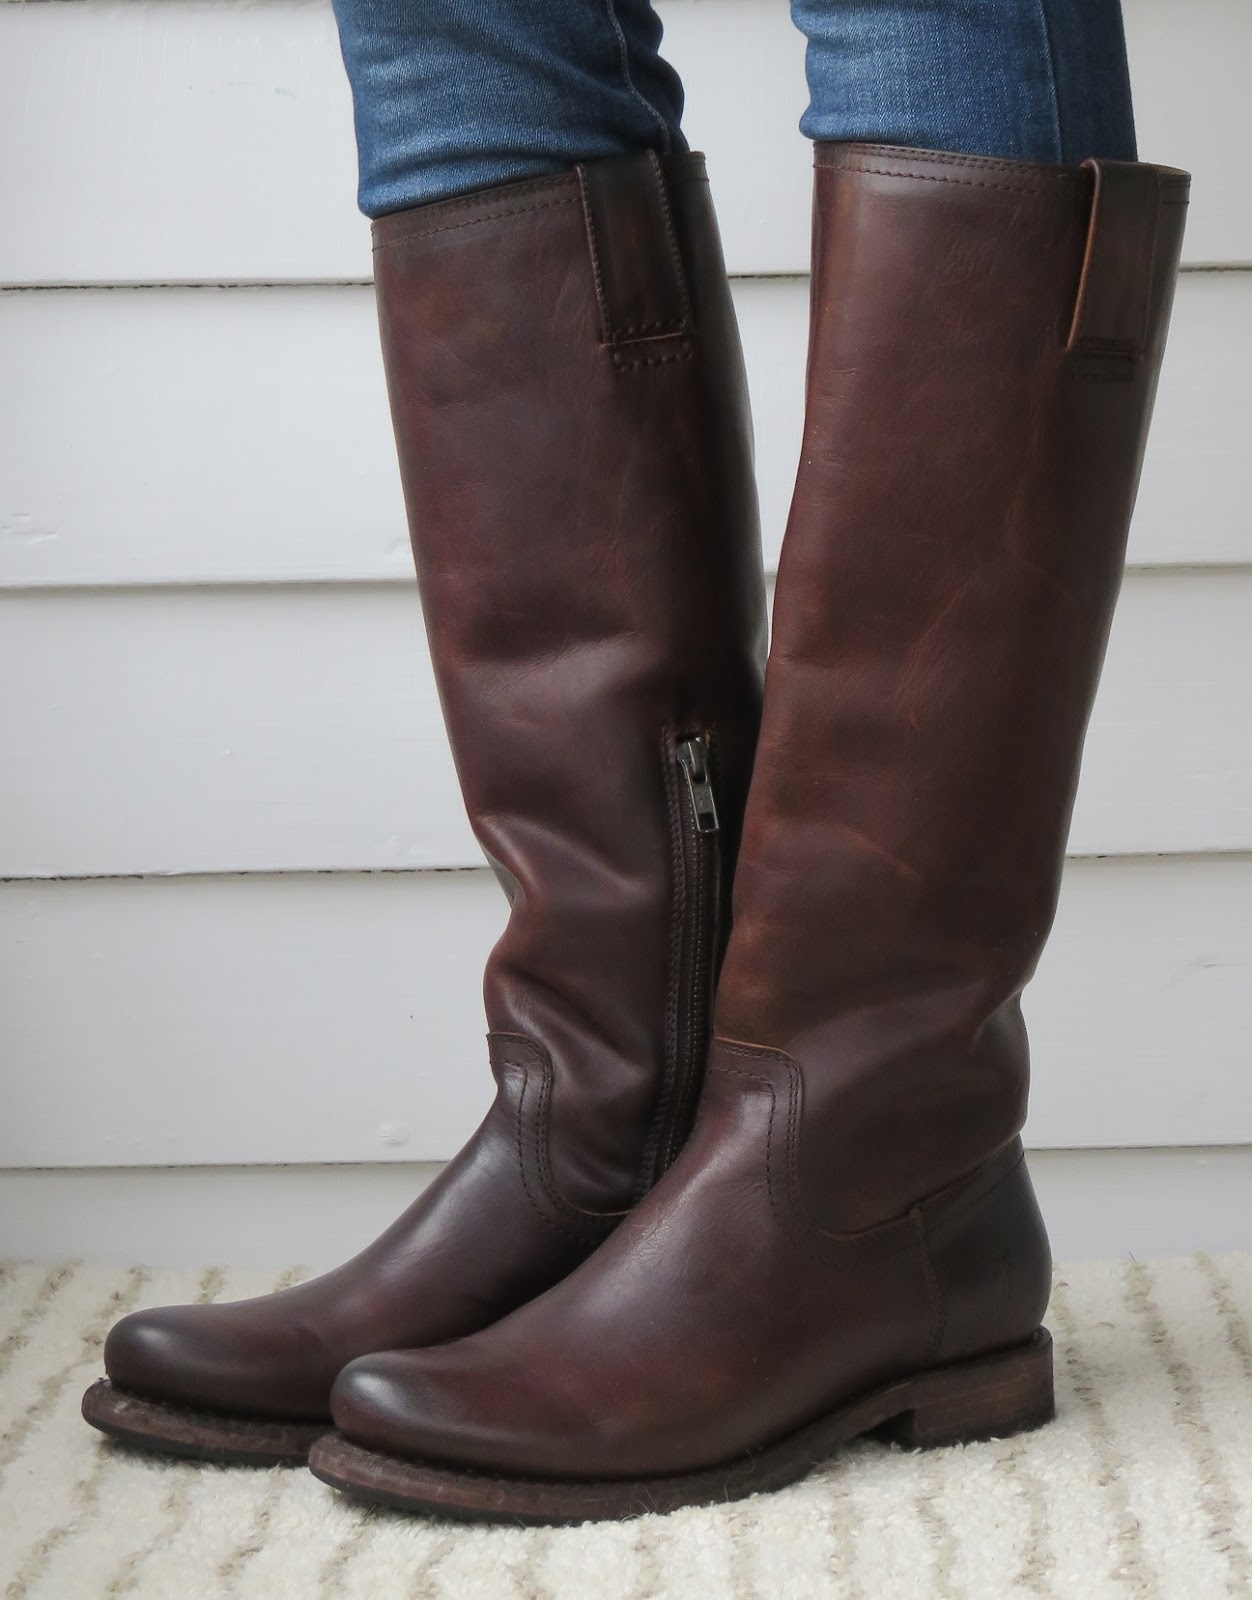 Howdy Slim! Riding Boots for Thin Calves: April 2016